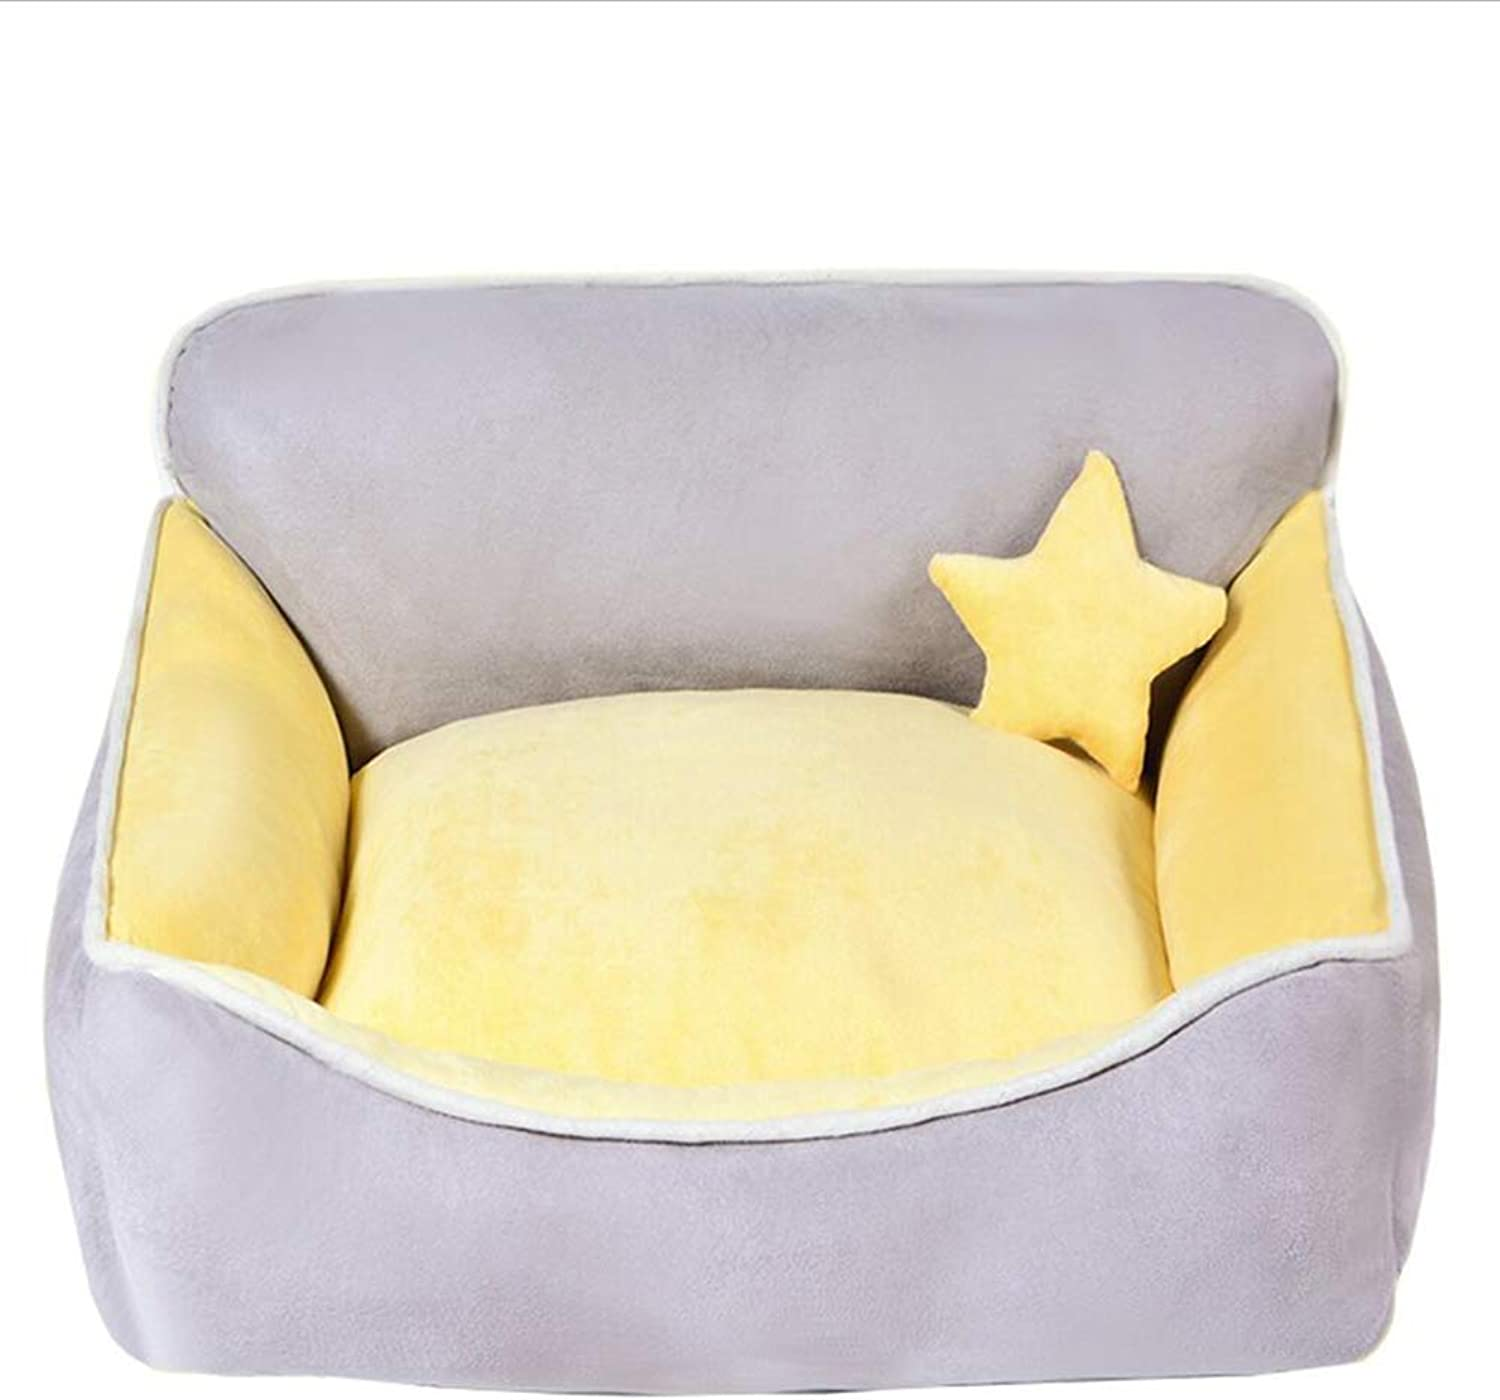 Pet Nest Pet Sofa Pet Bed Cat Nest Kennel Dog Nest Cat Kennel Indoor Removable and Washable Four Seasons Universal Haiming (color   Yellow, Size   S)